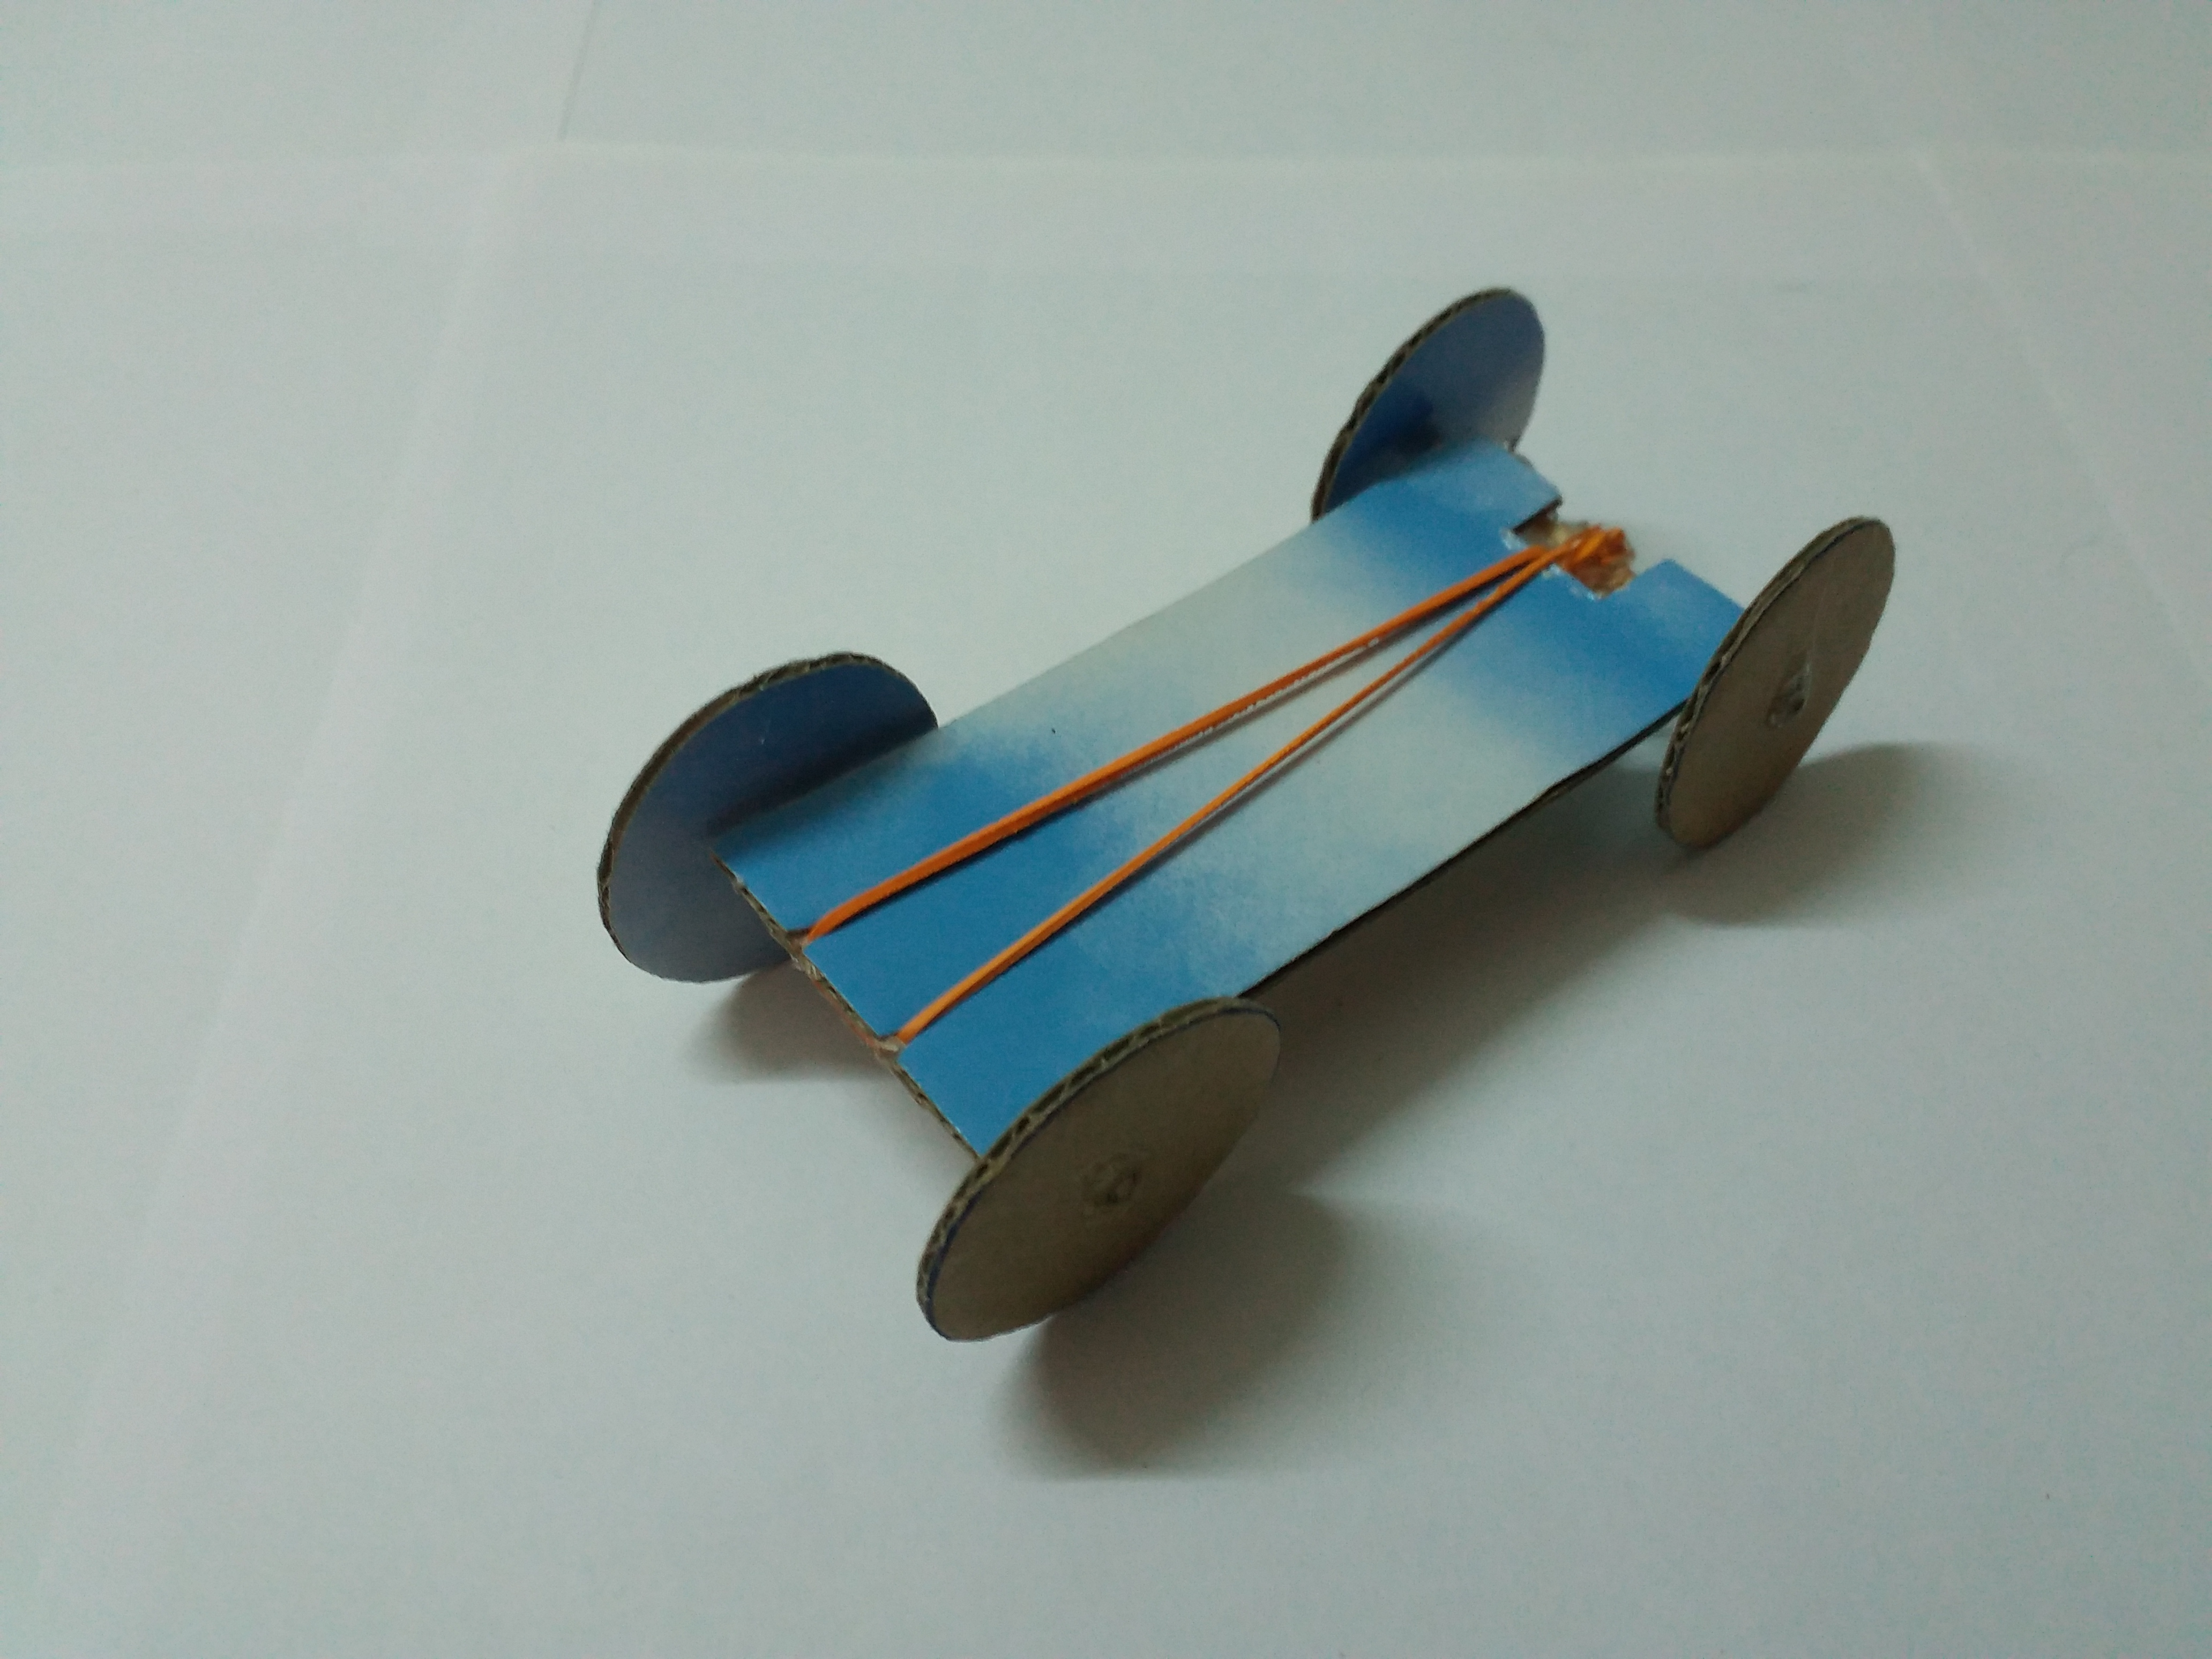 Cardboard Rubberband Car